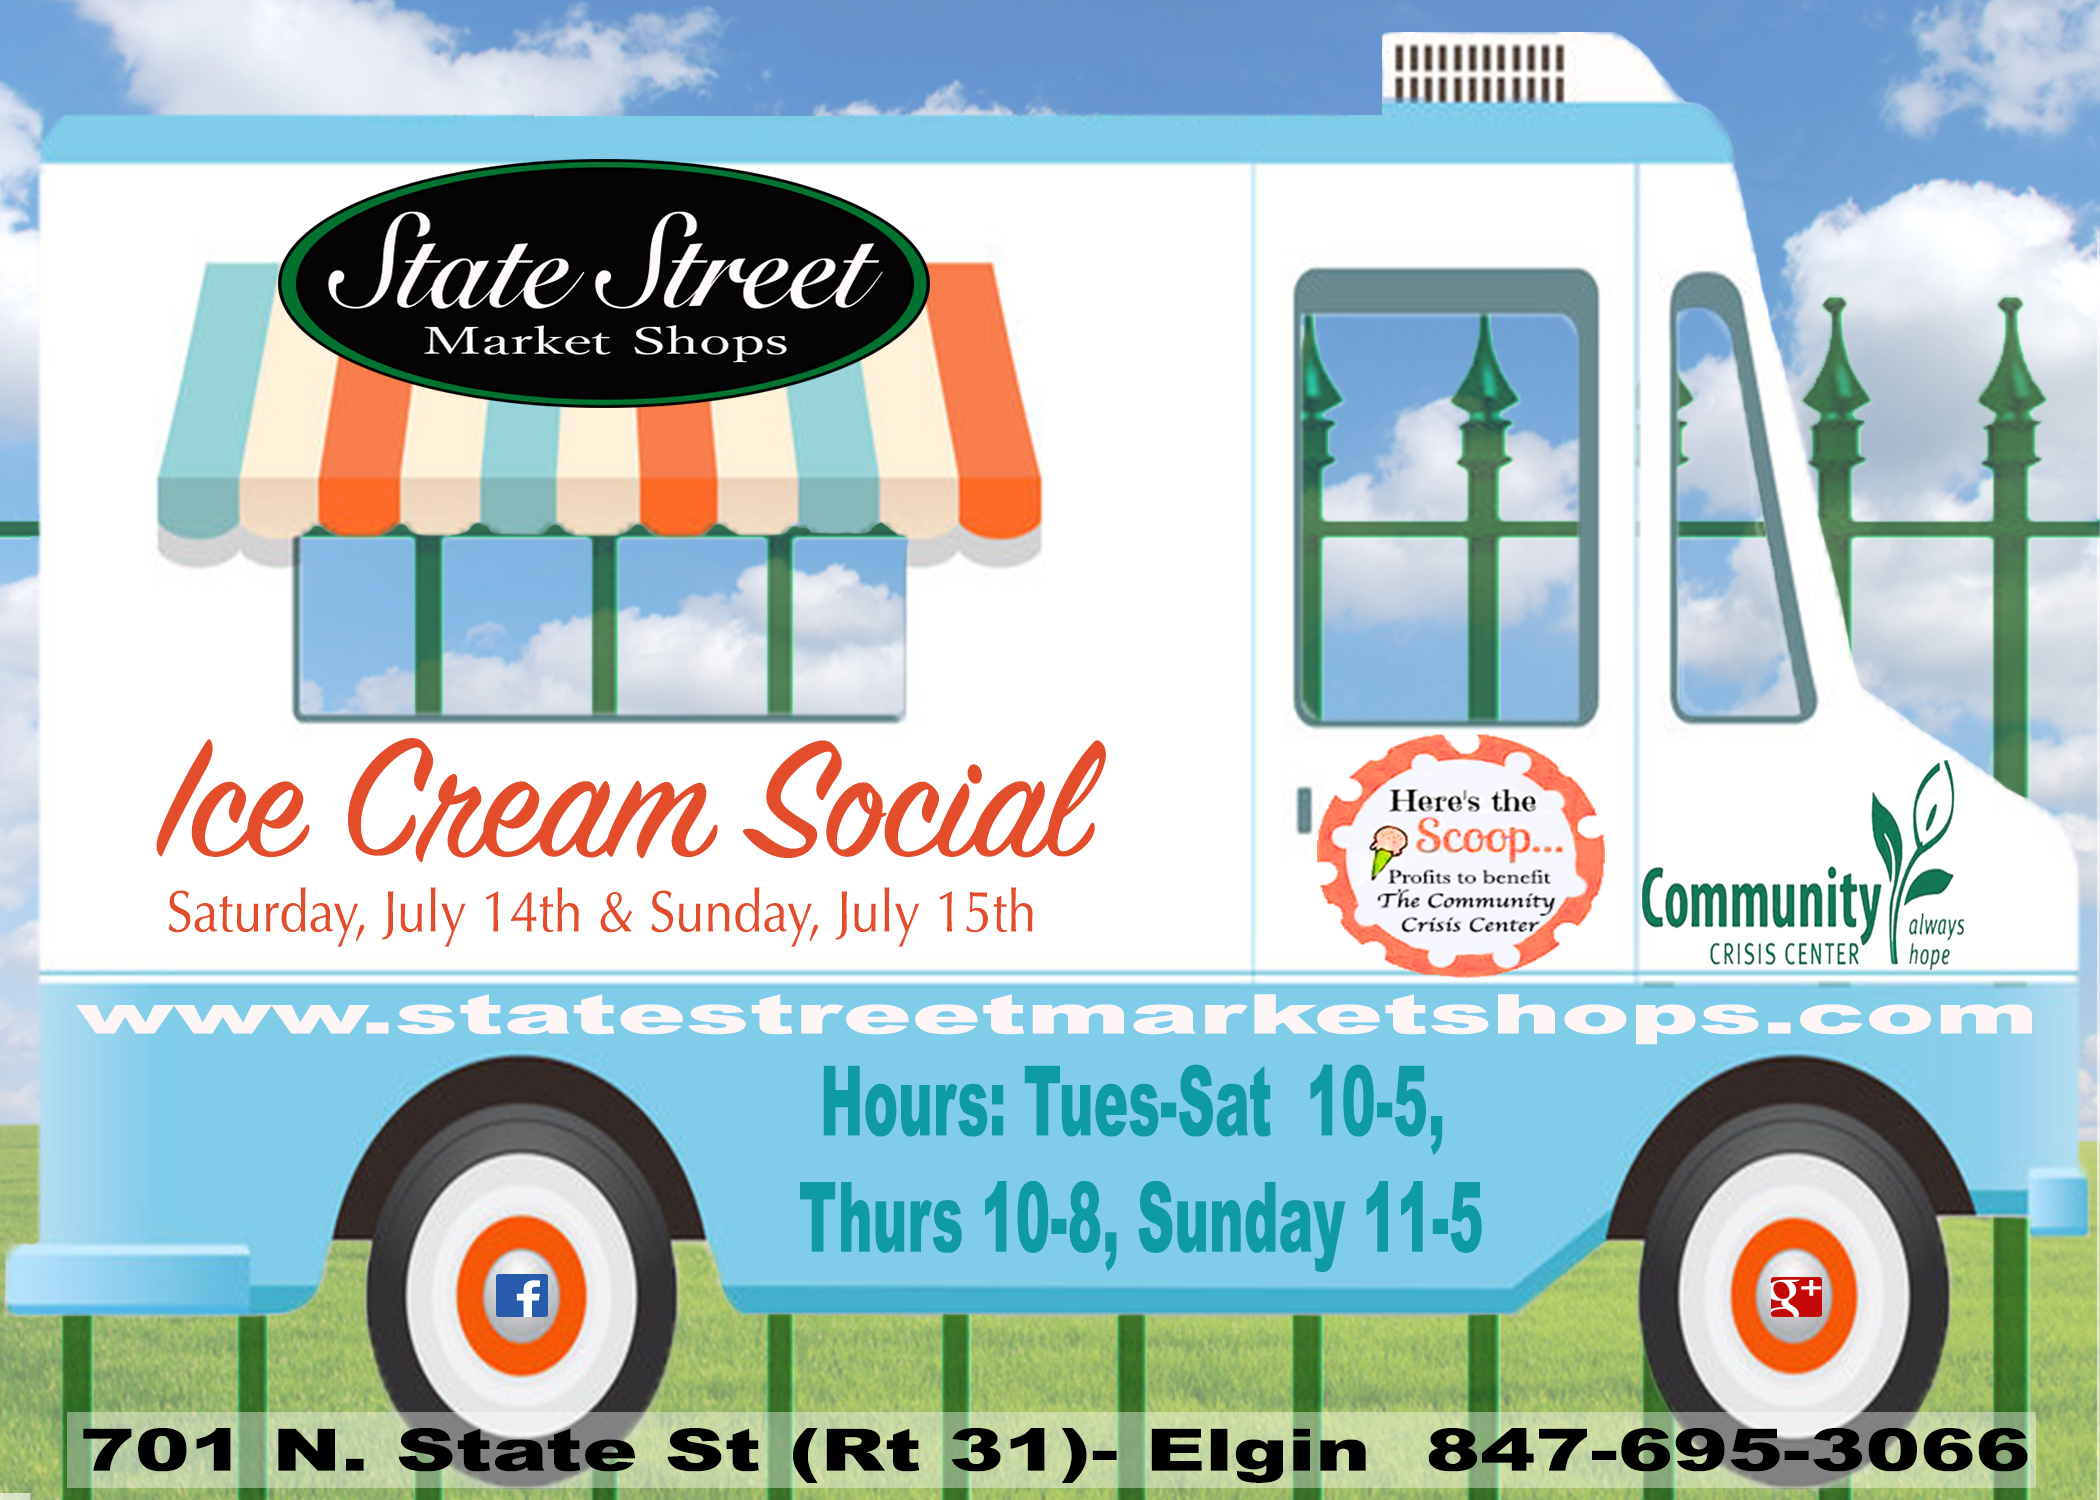 Ice Cream Social at State Street Market Shops